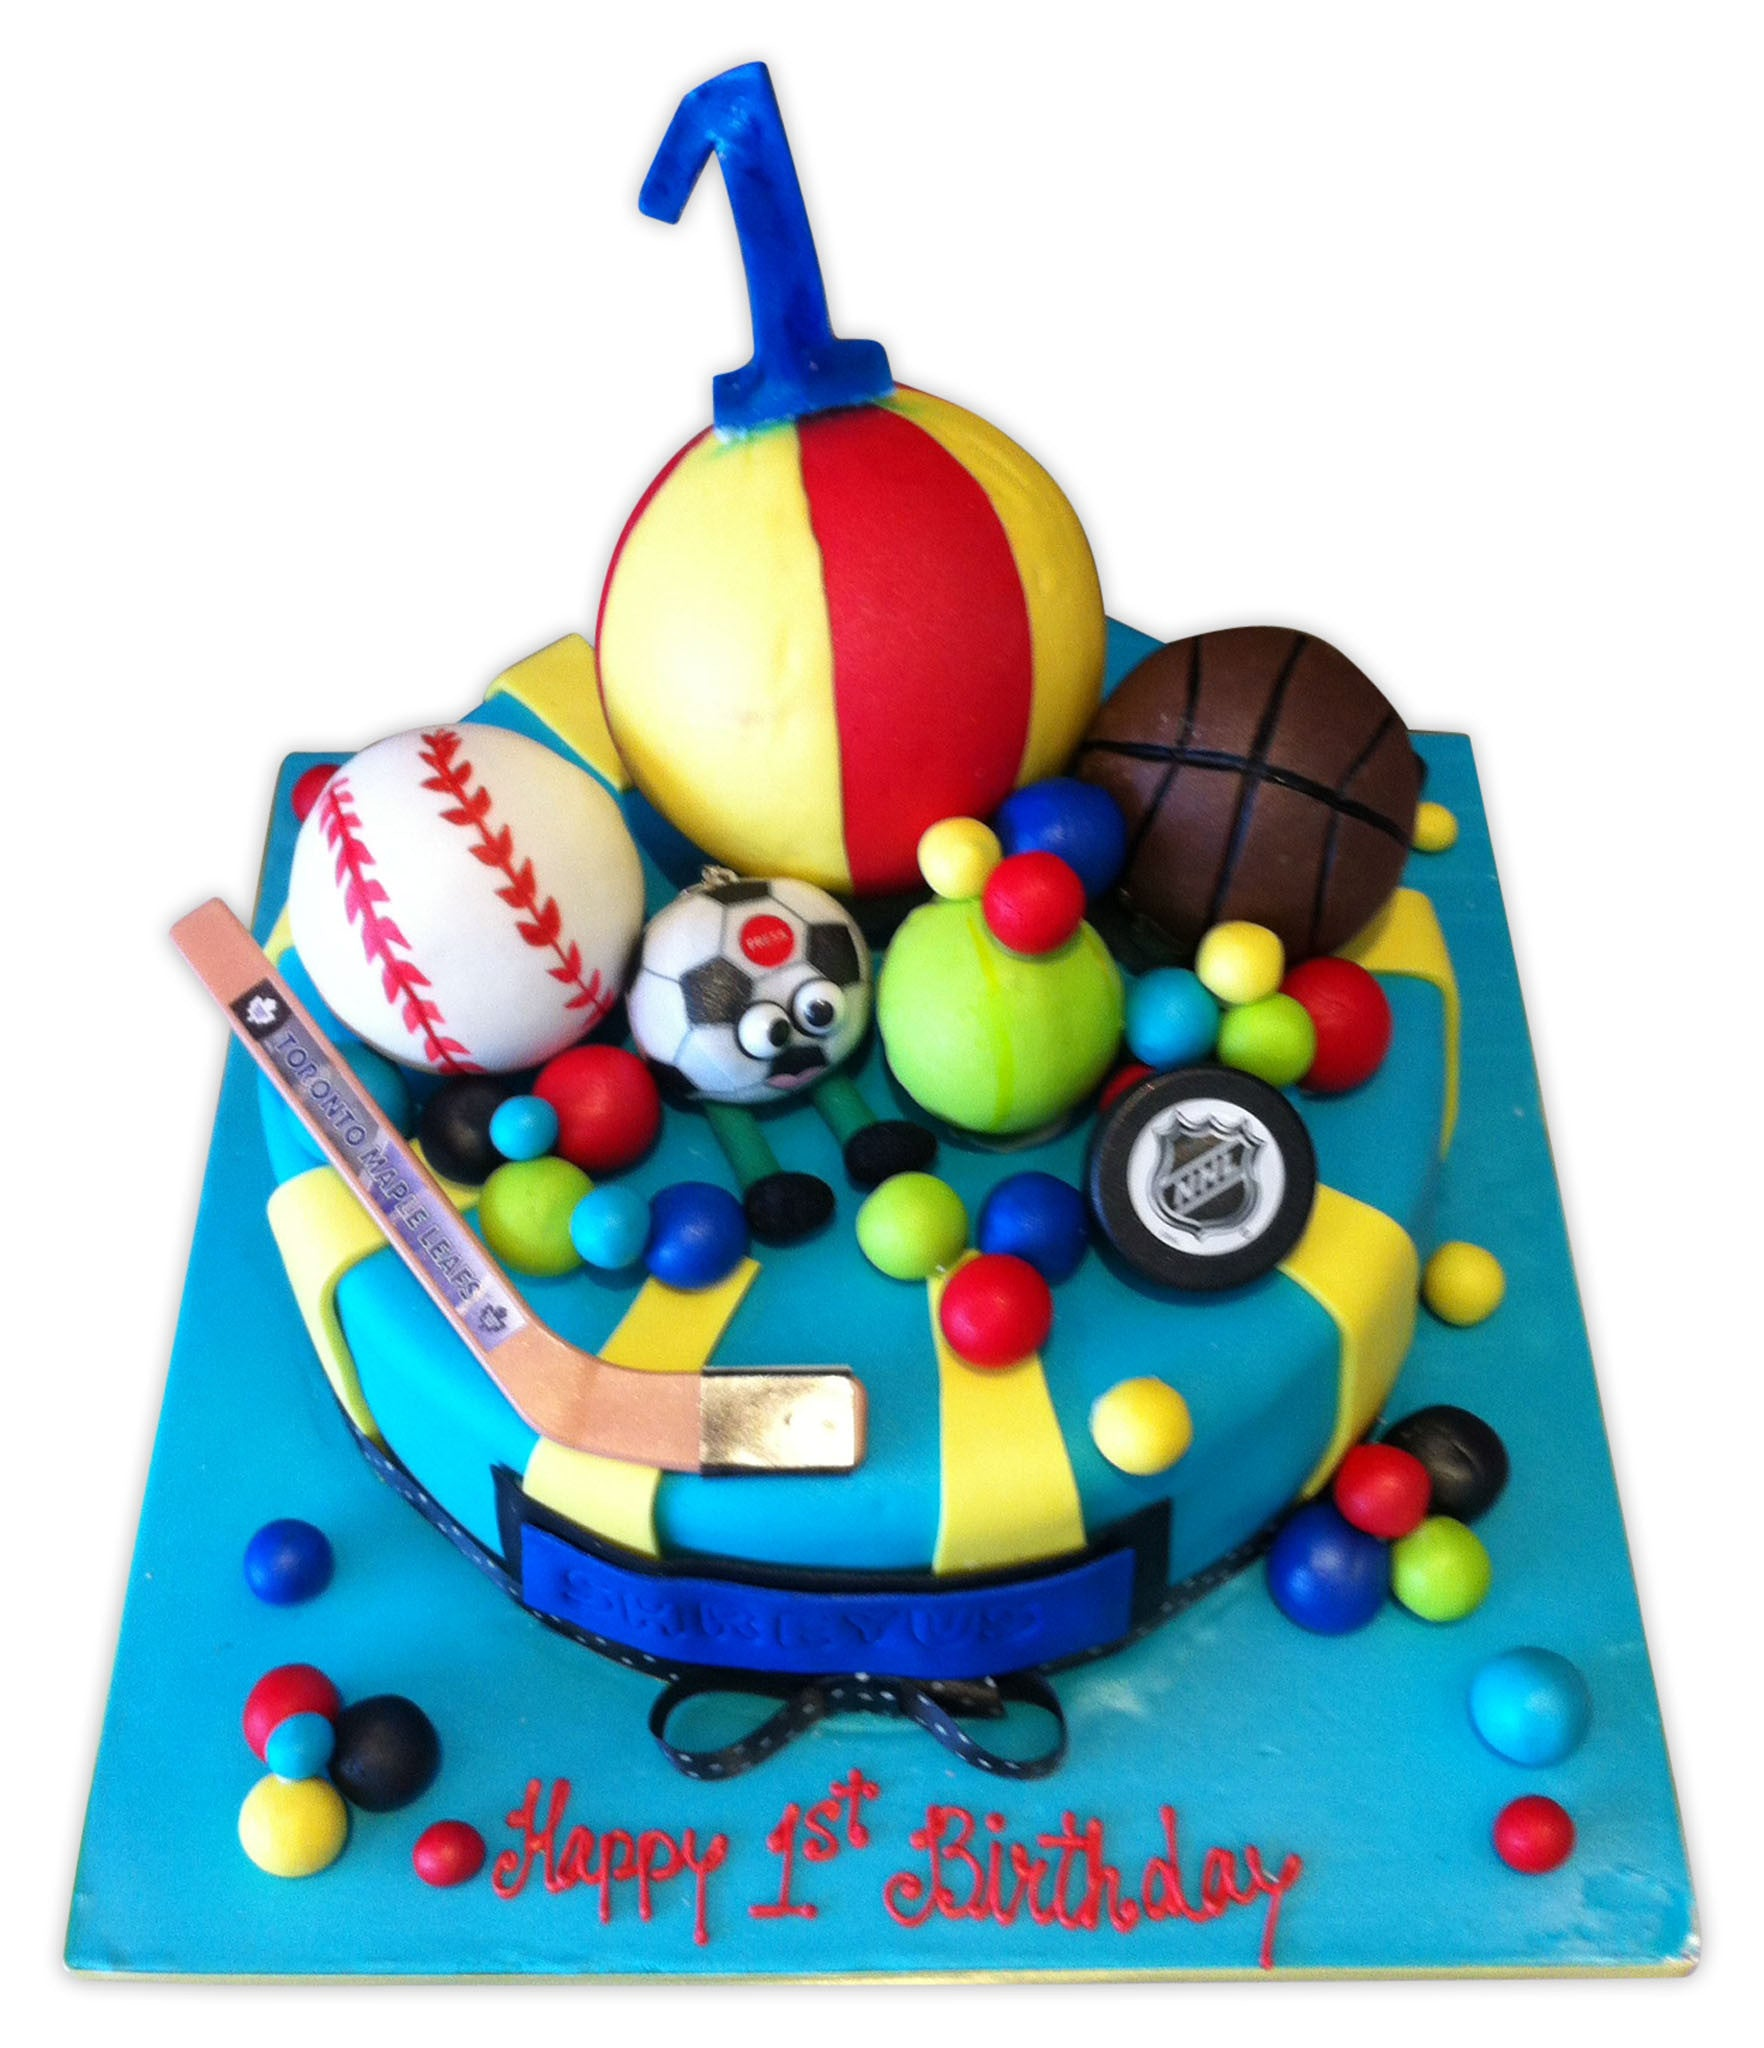 Stupendous First Birthday Sports Ball Cake Rashmis Bakery Personalised Birthday Cards Veneteletsinfo